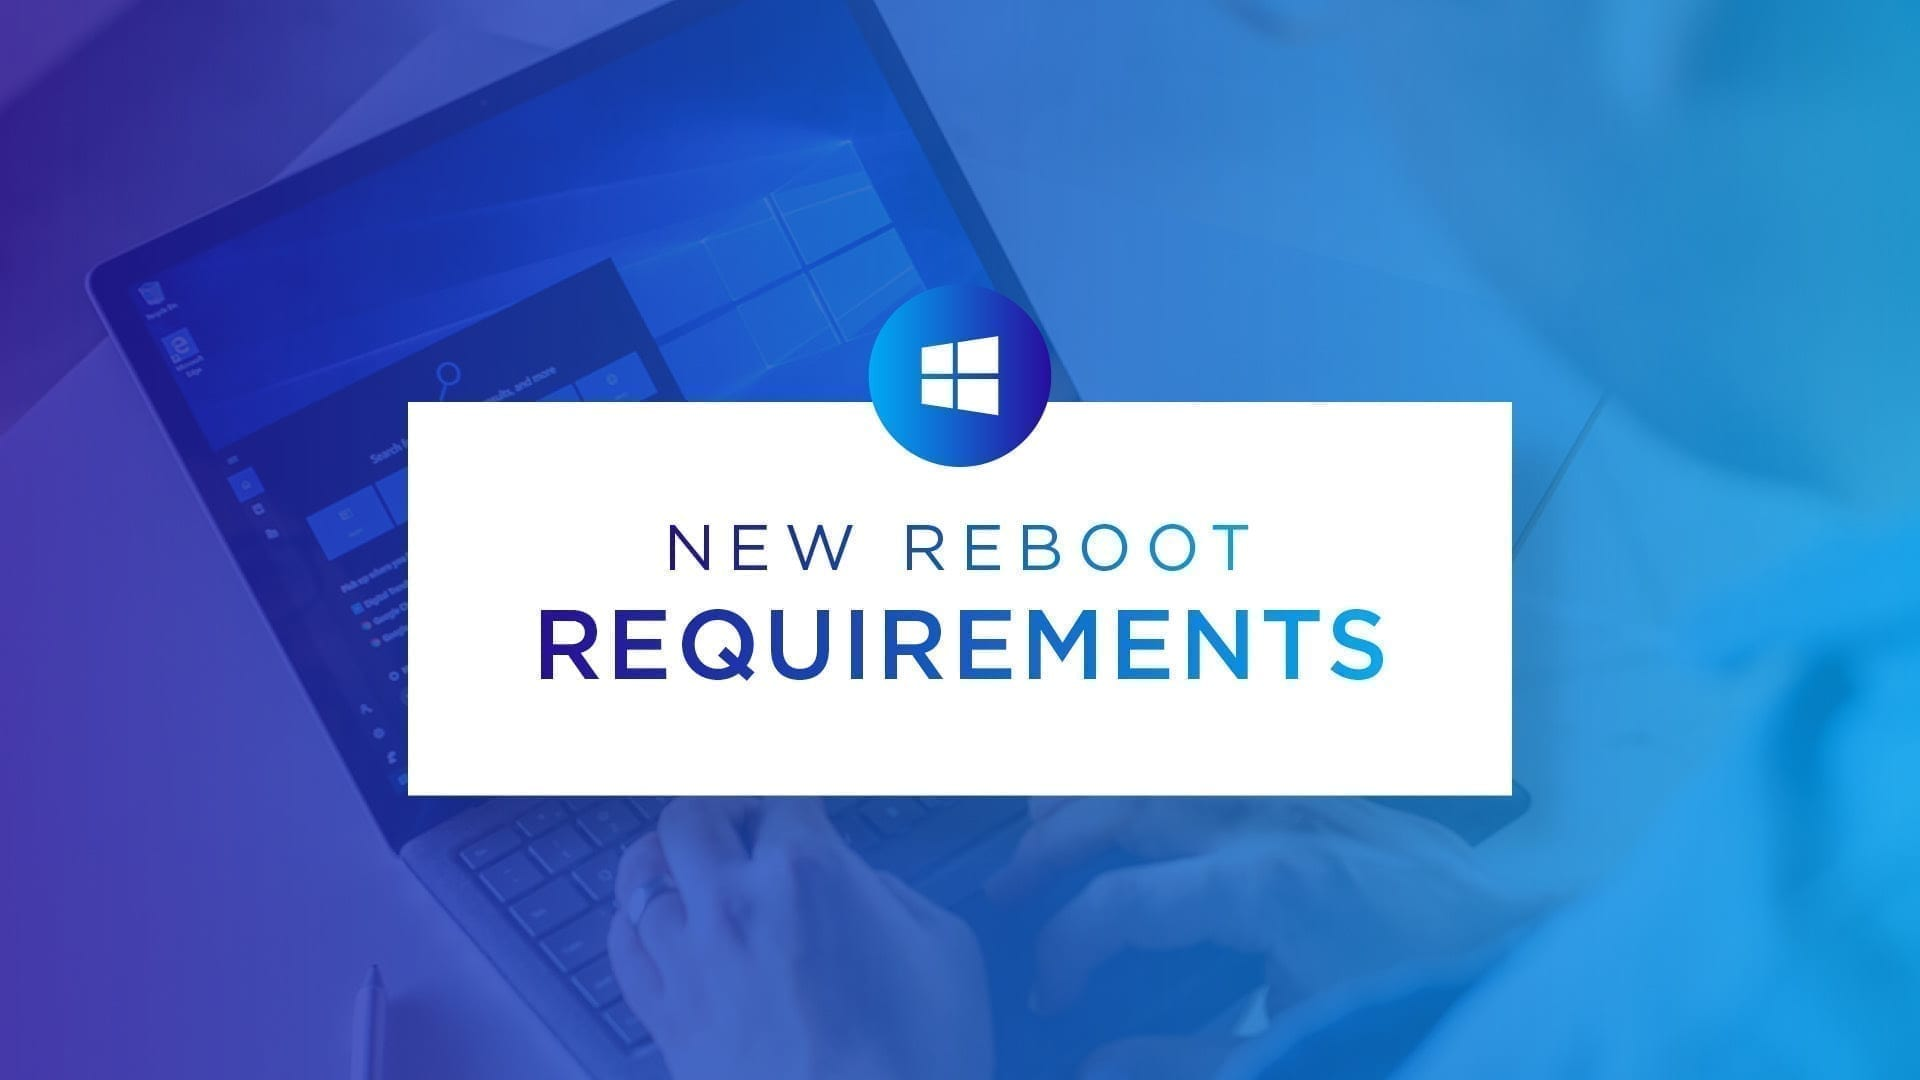 End of Life Reboot Requirements